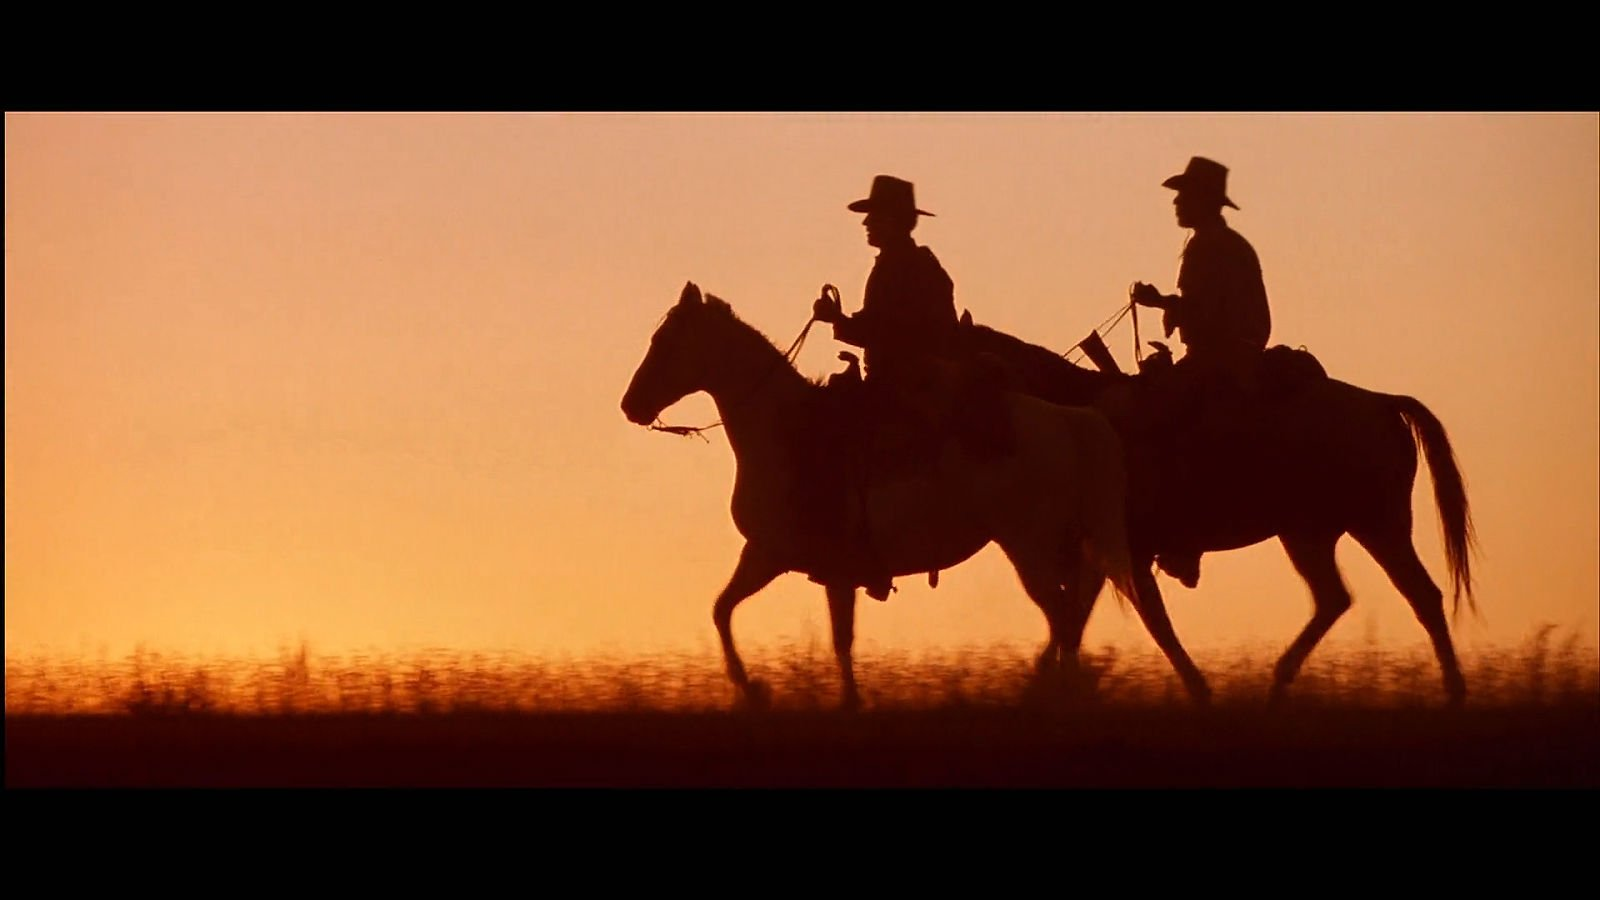 Clint Eastwood Cowboy Wallpaper: UNFORGIVEN Western Clint Eastwood Action Drama (7